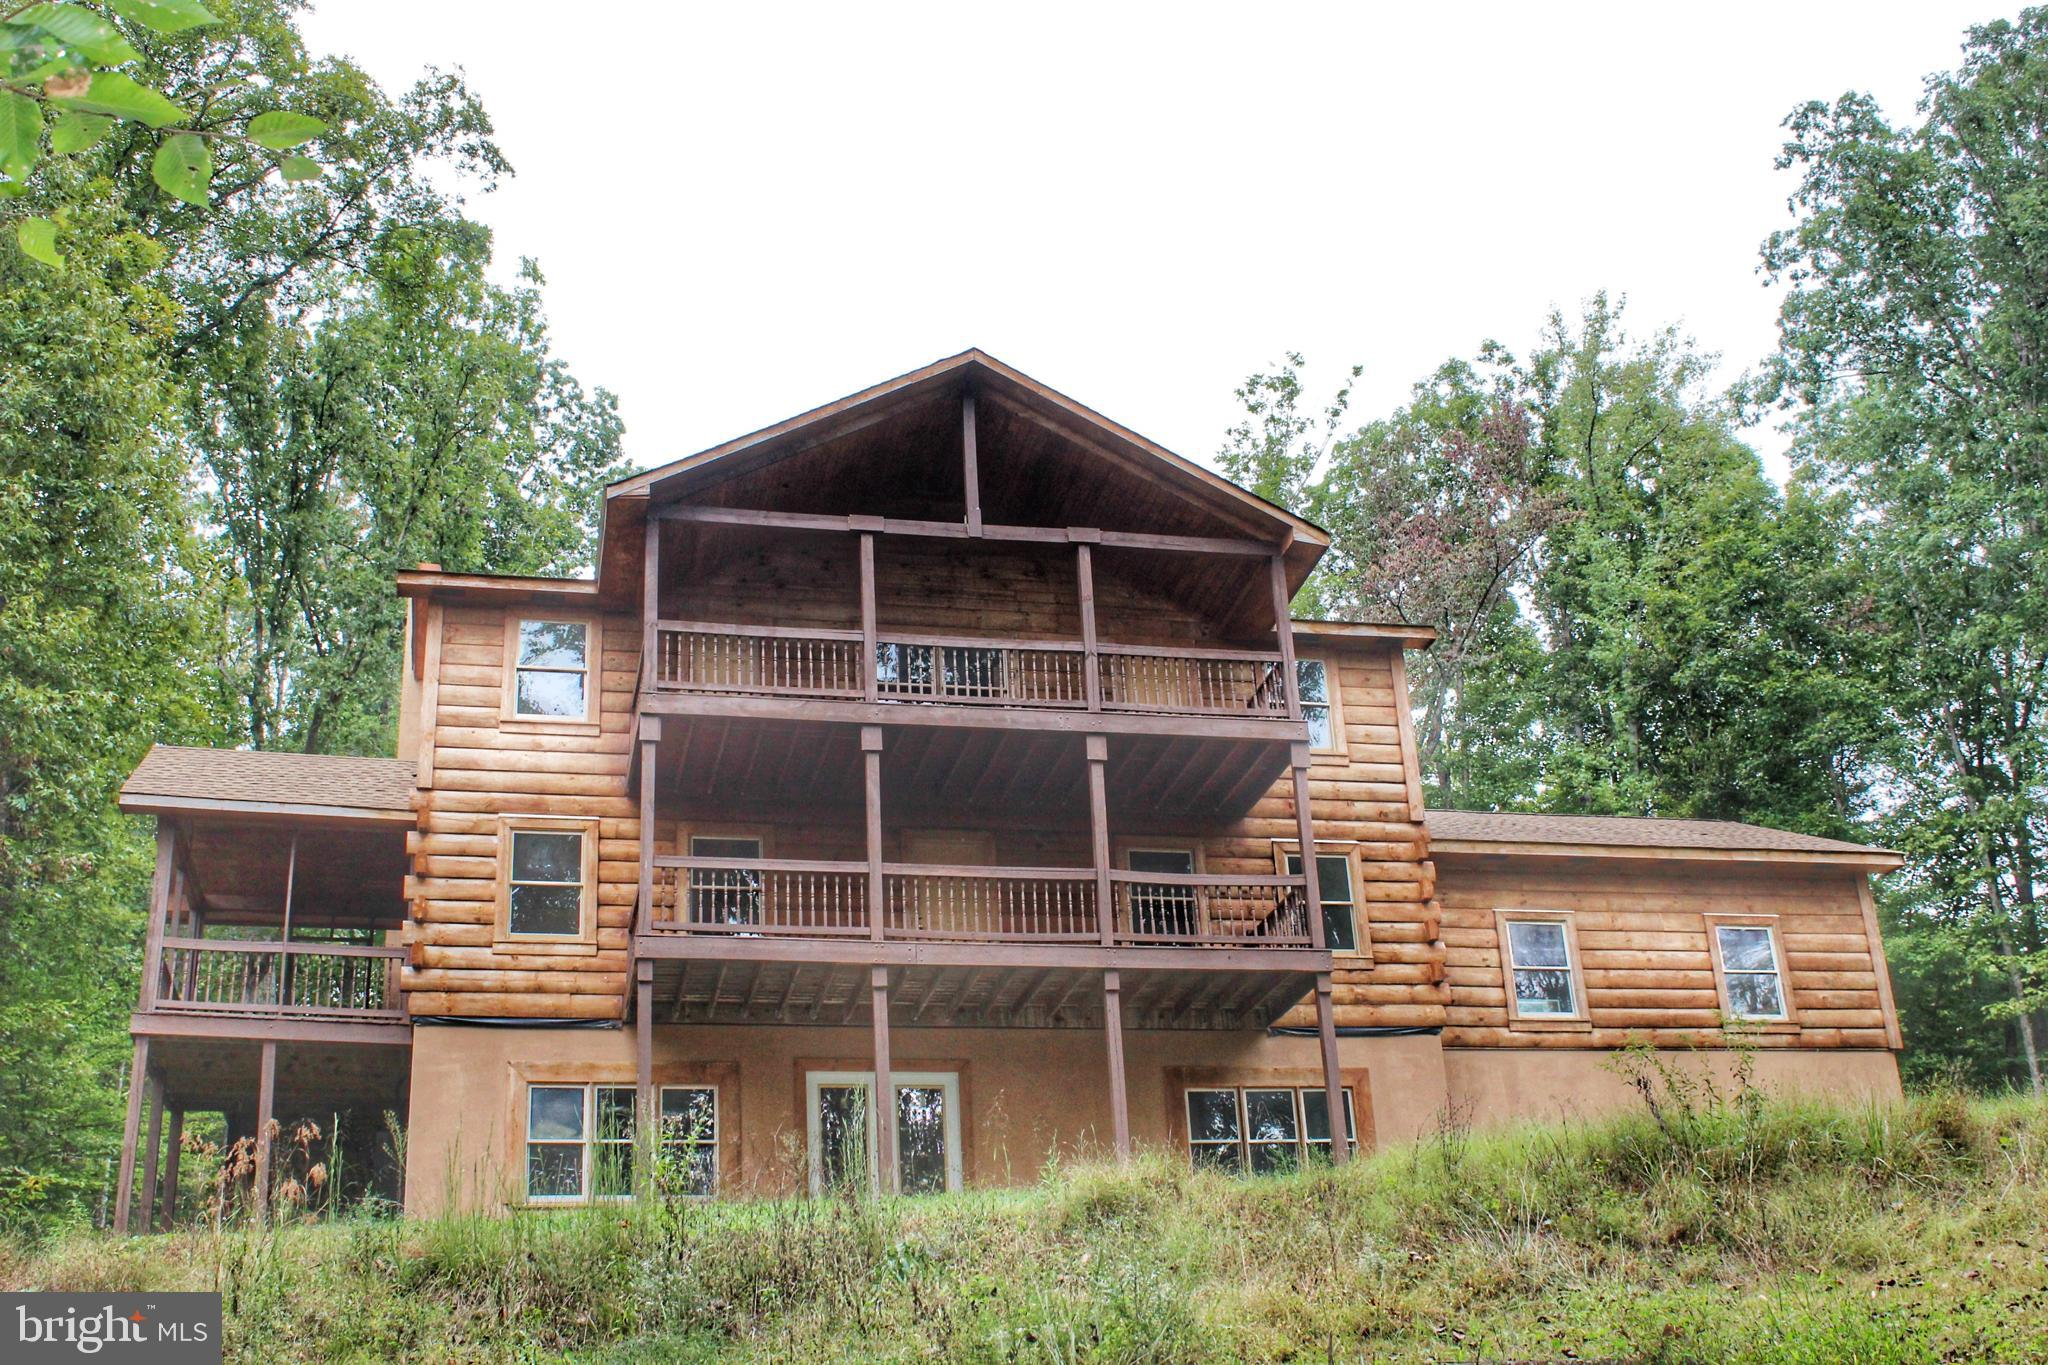 670 BEND OF THE RIVER LAN LANE, LOUISA, VA 23093